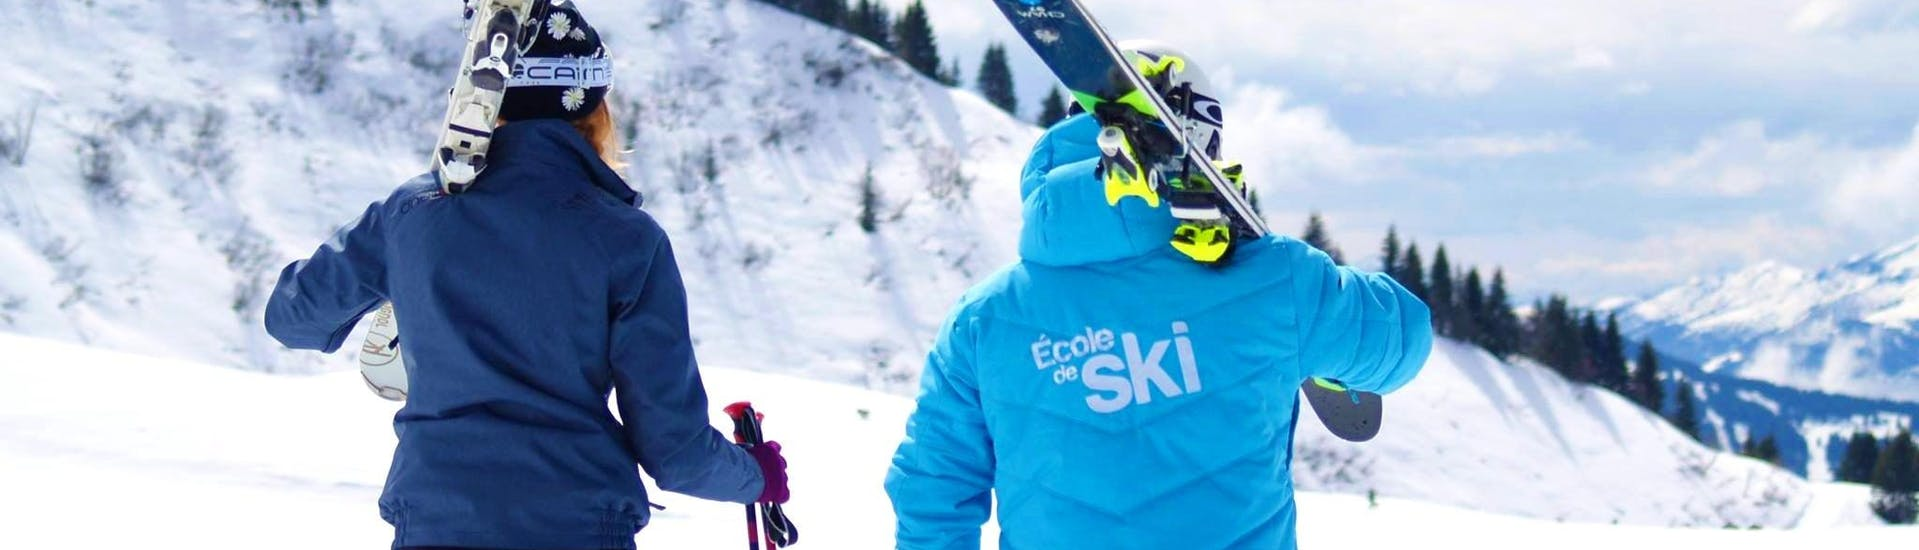 private-ski-lessons-for-adults-february-easy2ride-avoriaz-hero